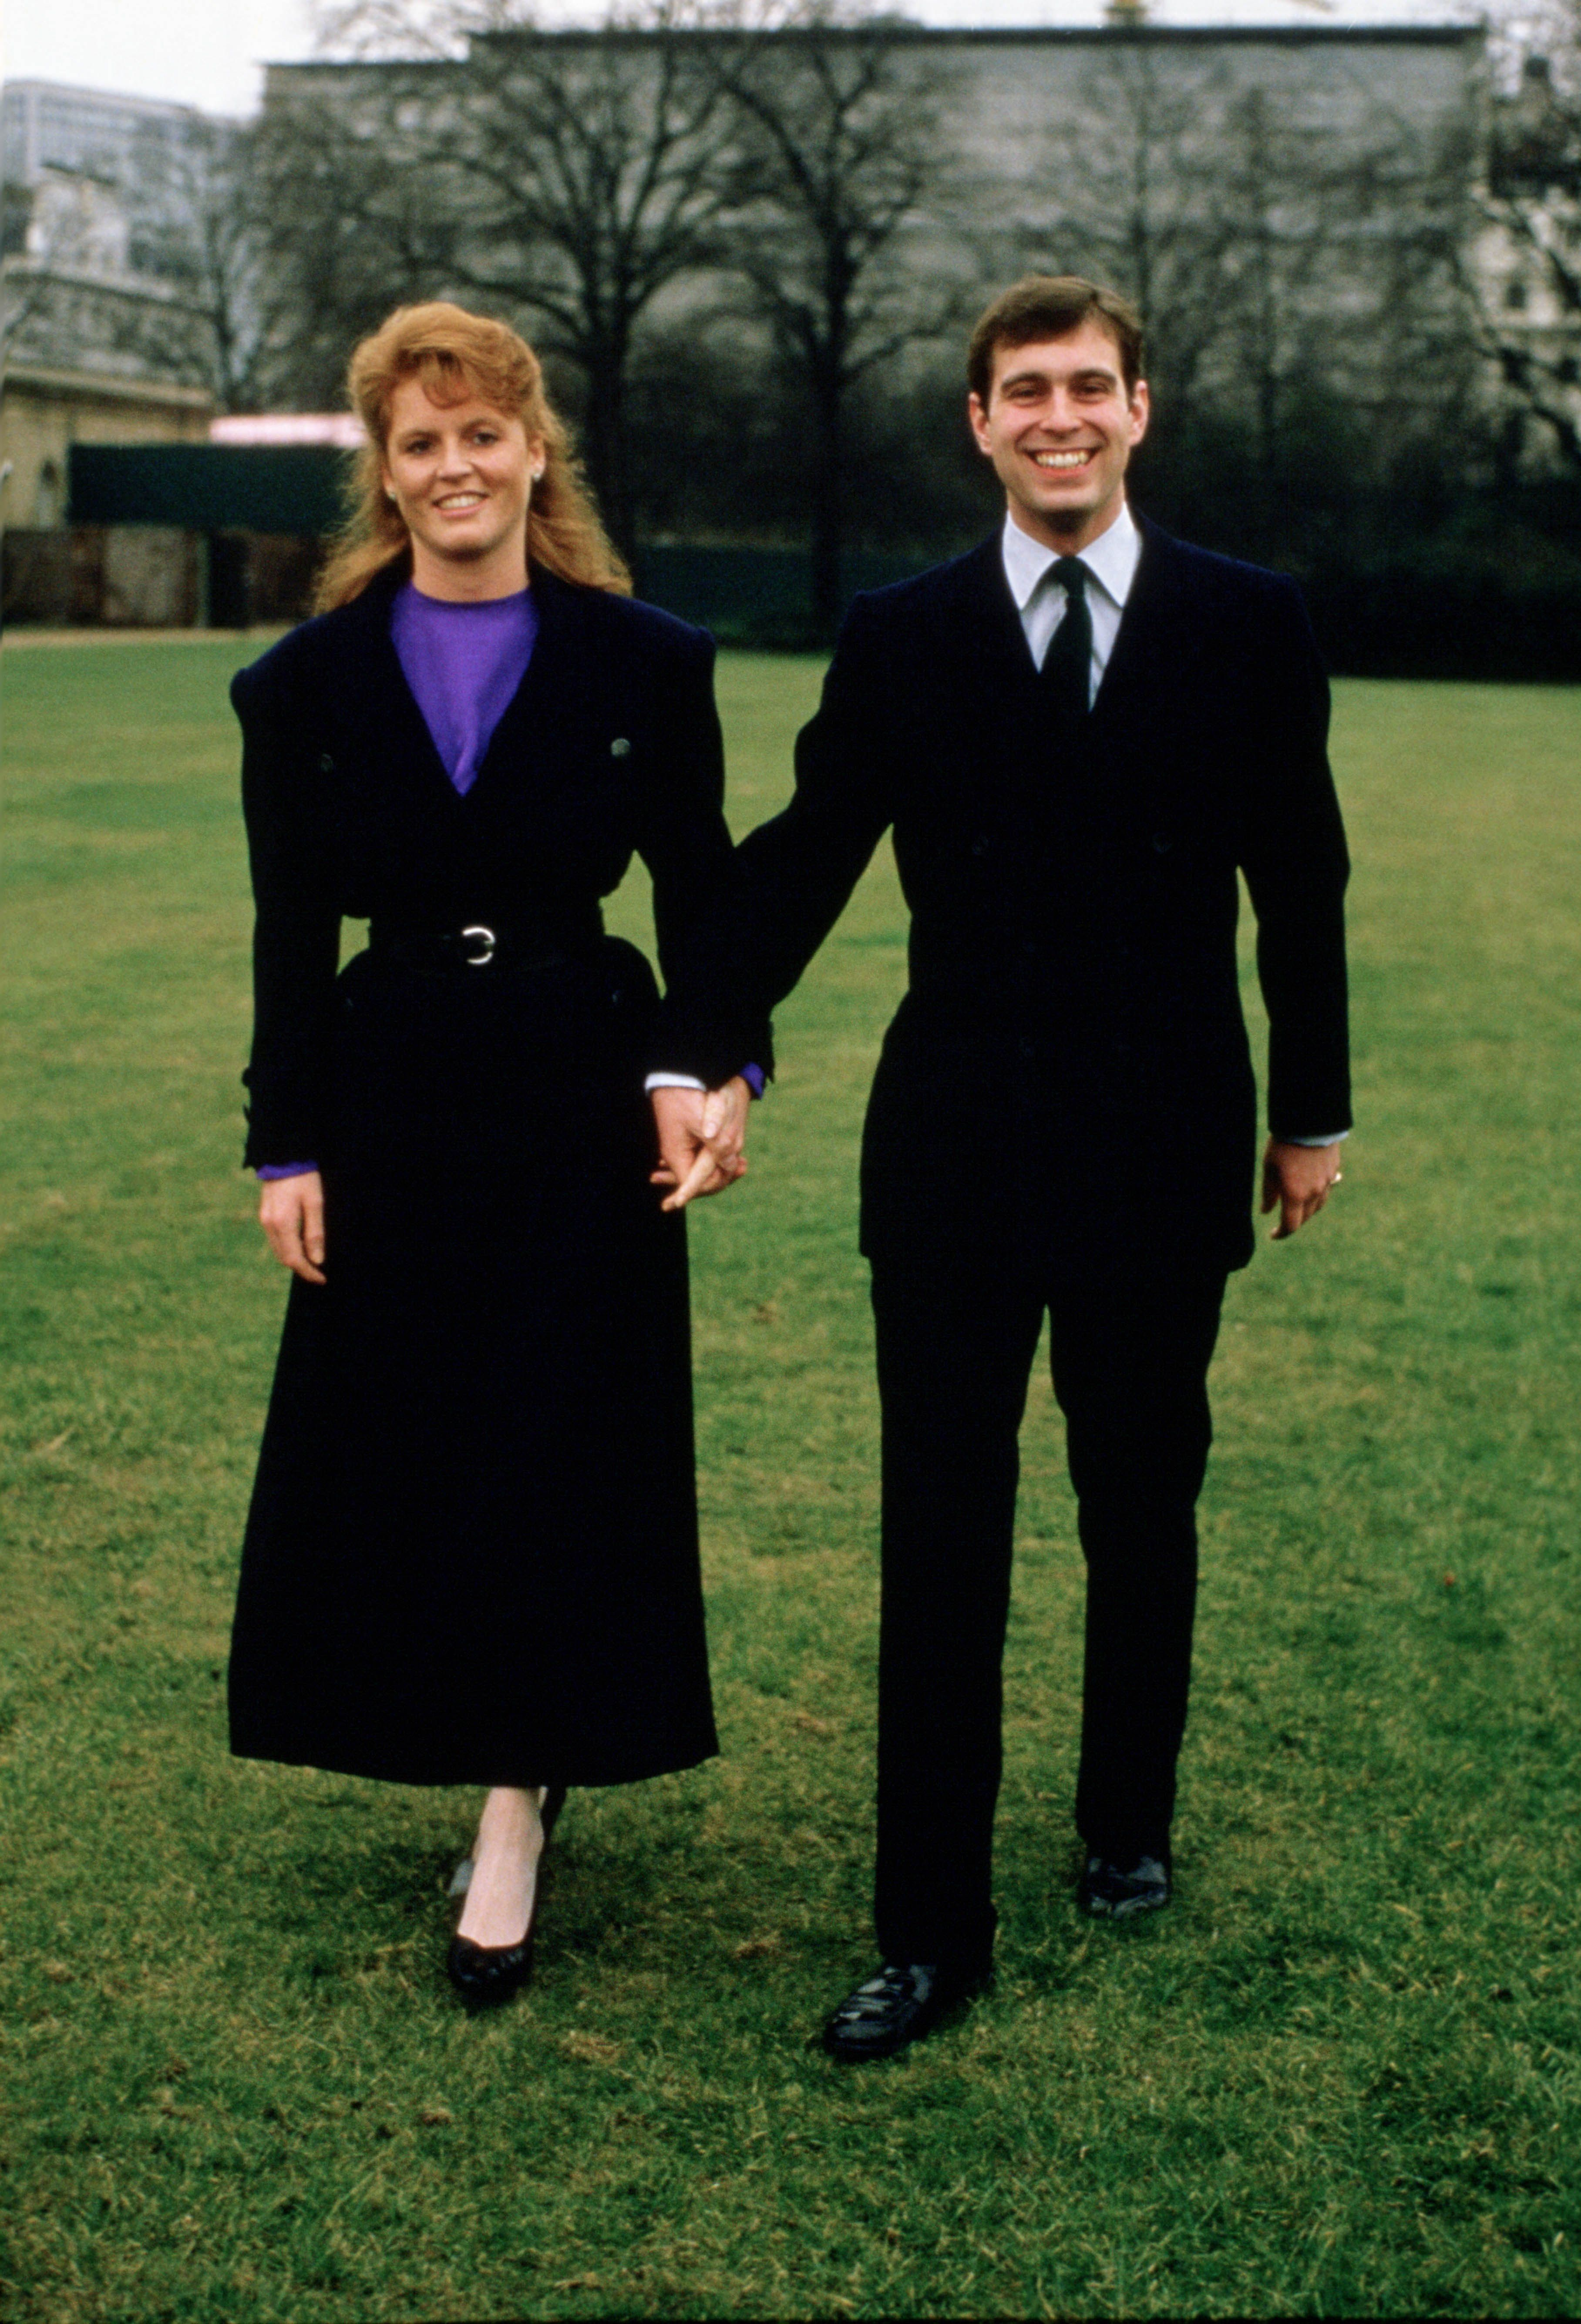 Prince Andrew, Duke of York with Sarah Ferguson after their